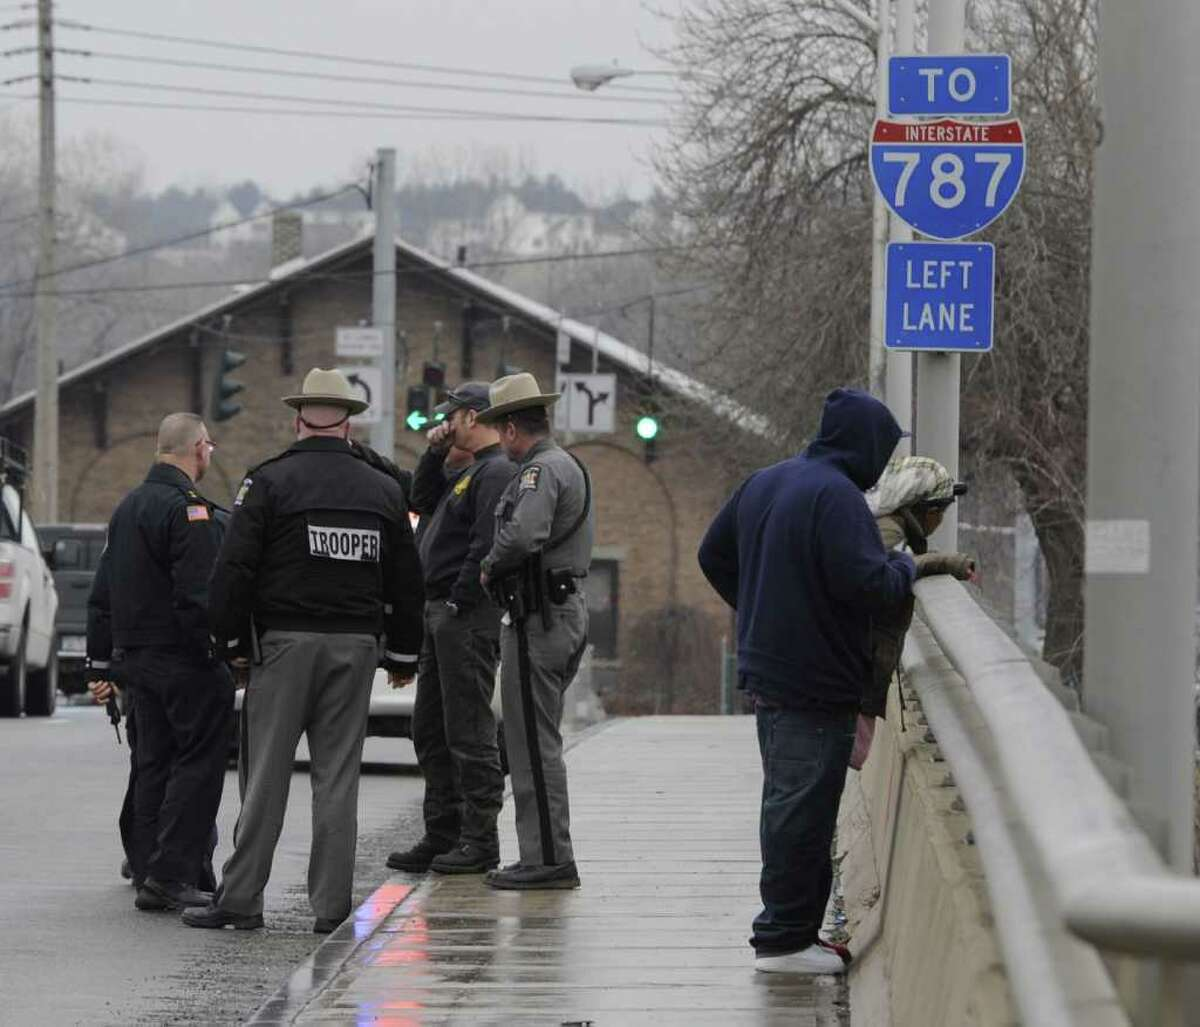 Law enforcement officials gather on the Green Island Bridge after a man jumped from the bridge in to the water below in Green Island, N.Y. Feb. 16, 2012. The man was removed from the water and taken to Albany Medical Center by Watervliet Fire Department Ambulance. ( Skip Dickstein / Times Union)